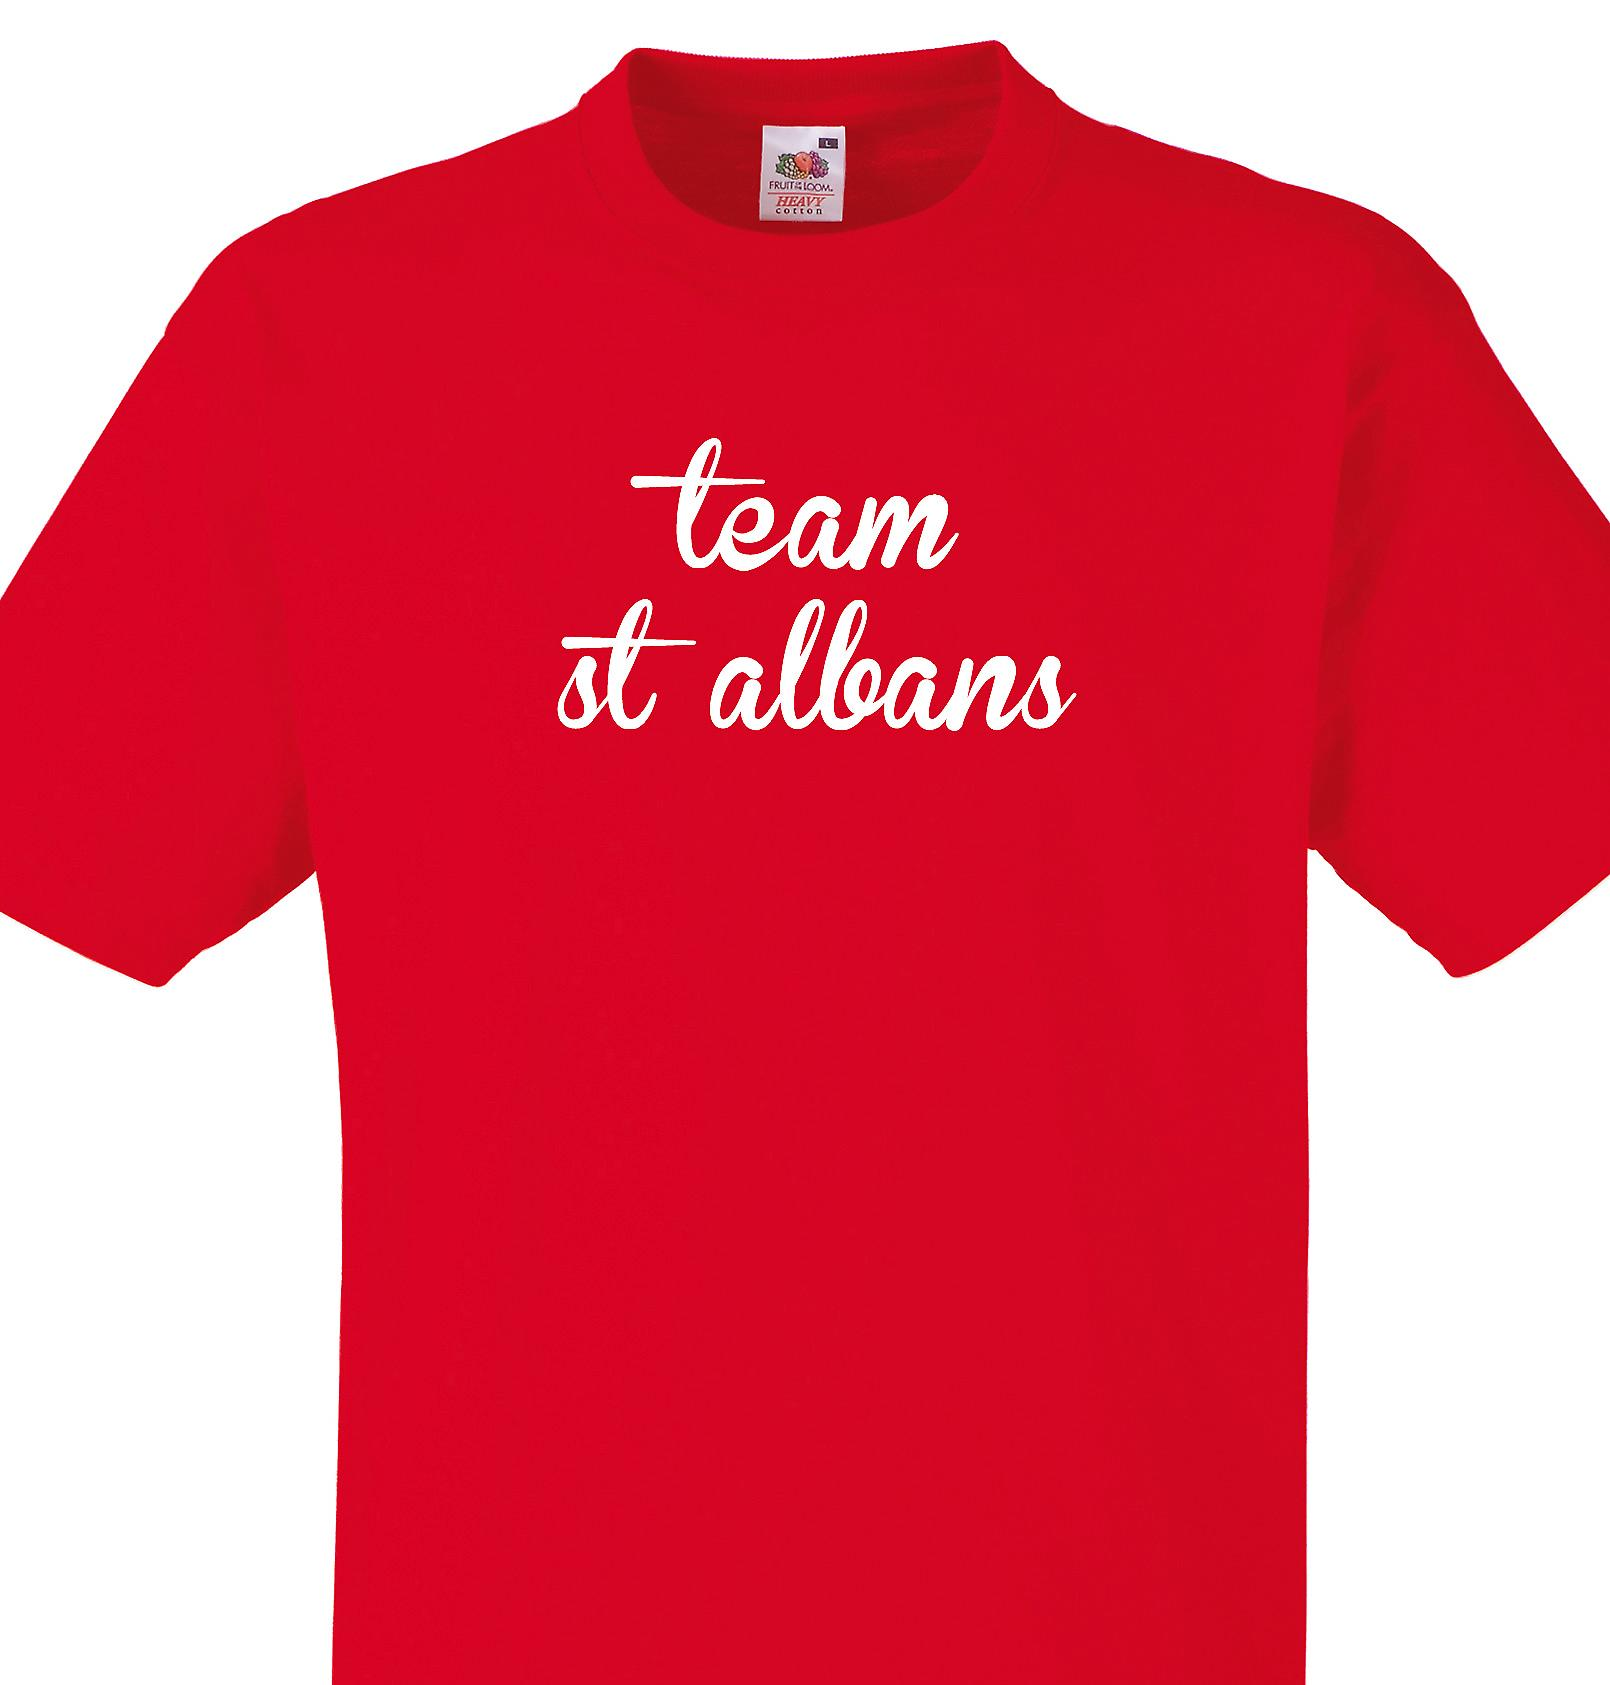 Team St albans Red T shirt